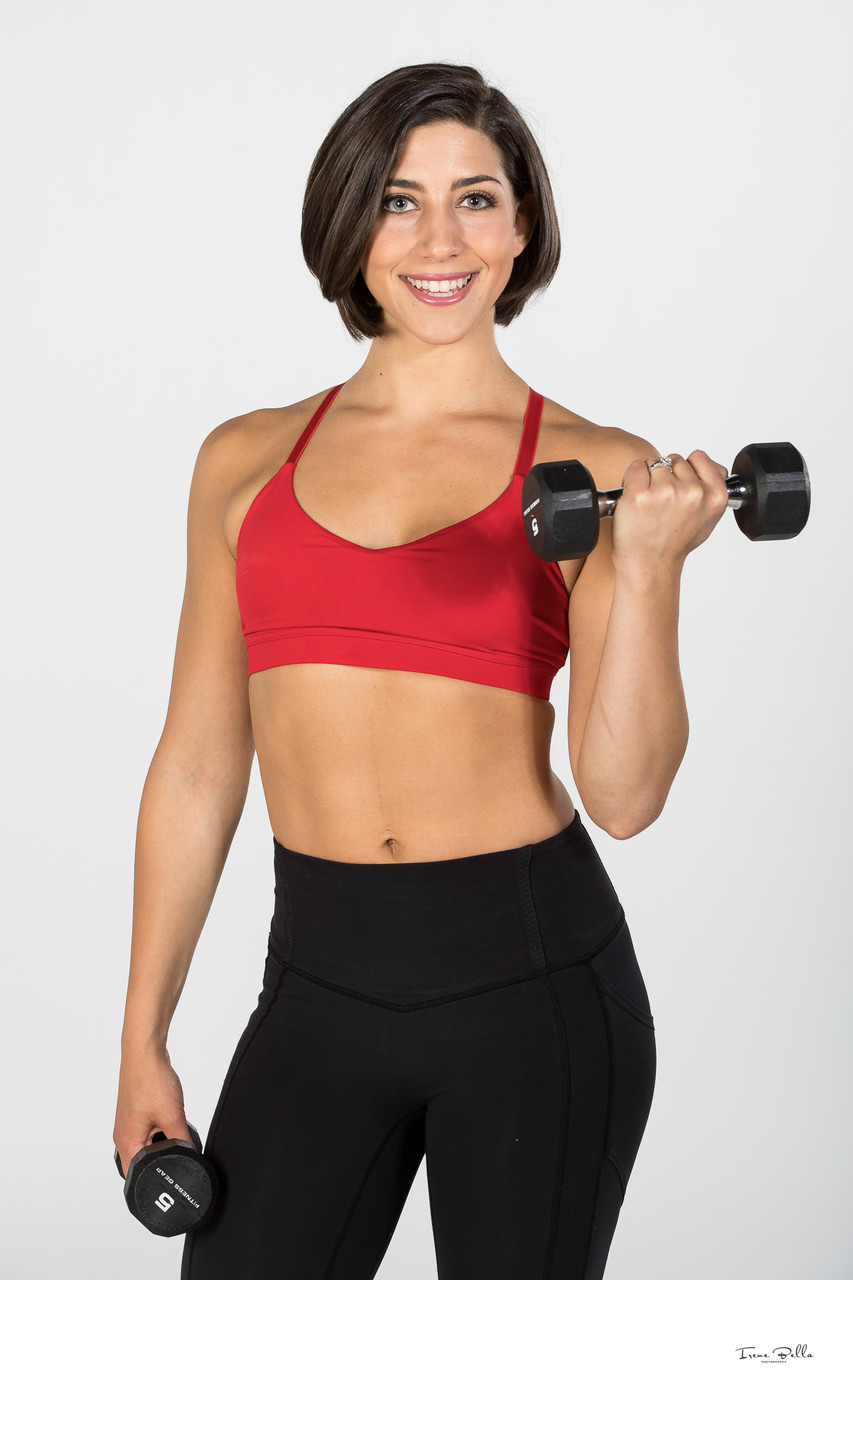 Long Island Fitness trainer photos